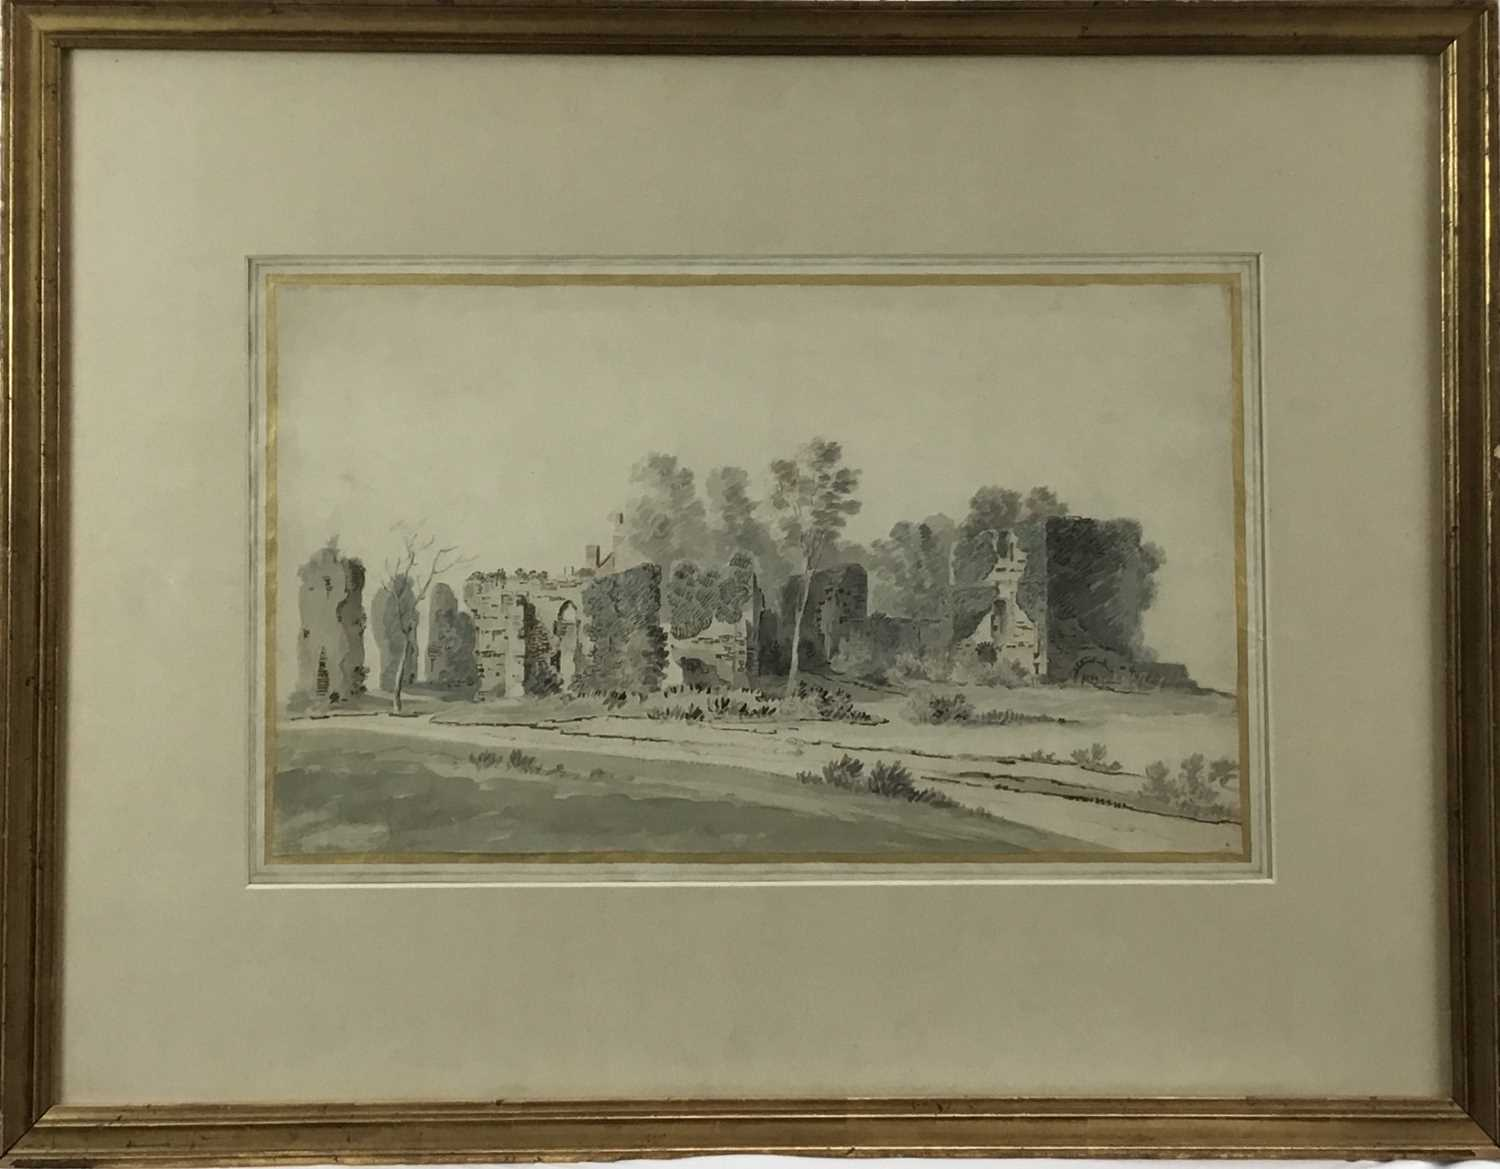 English School, early 18th century, monochrome pen, ink and watercolour - Castle Ruins, with mark fo